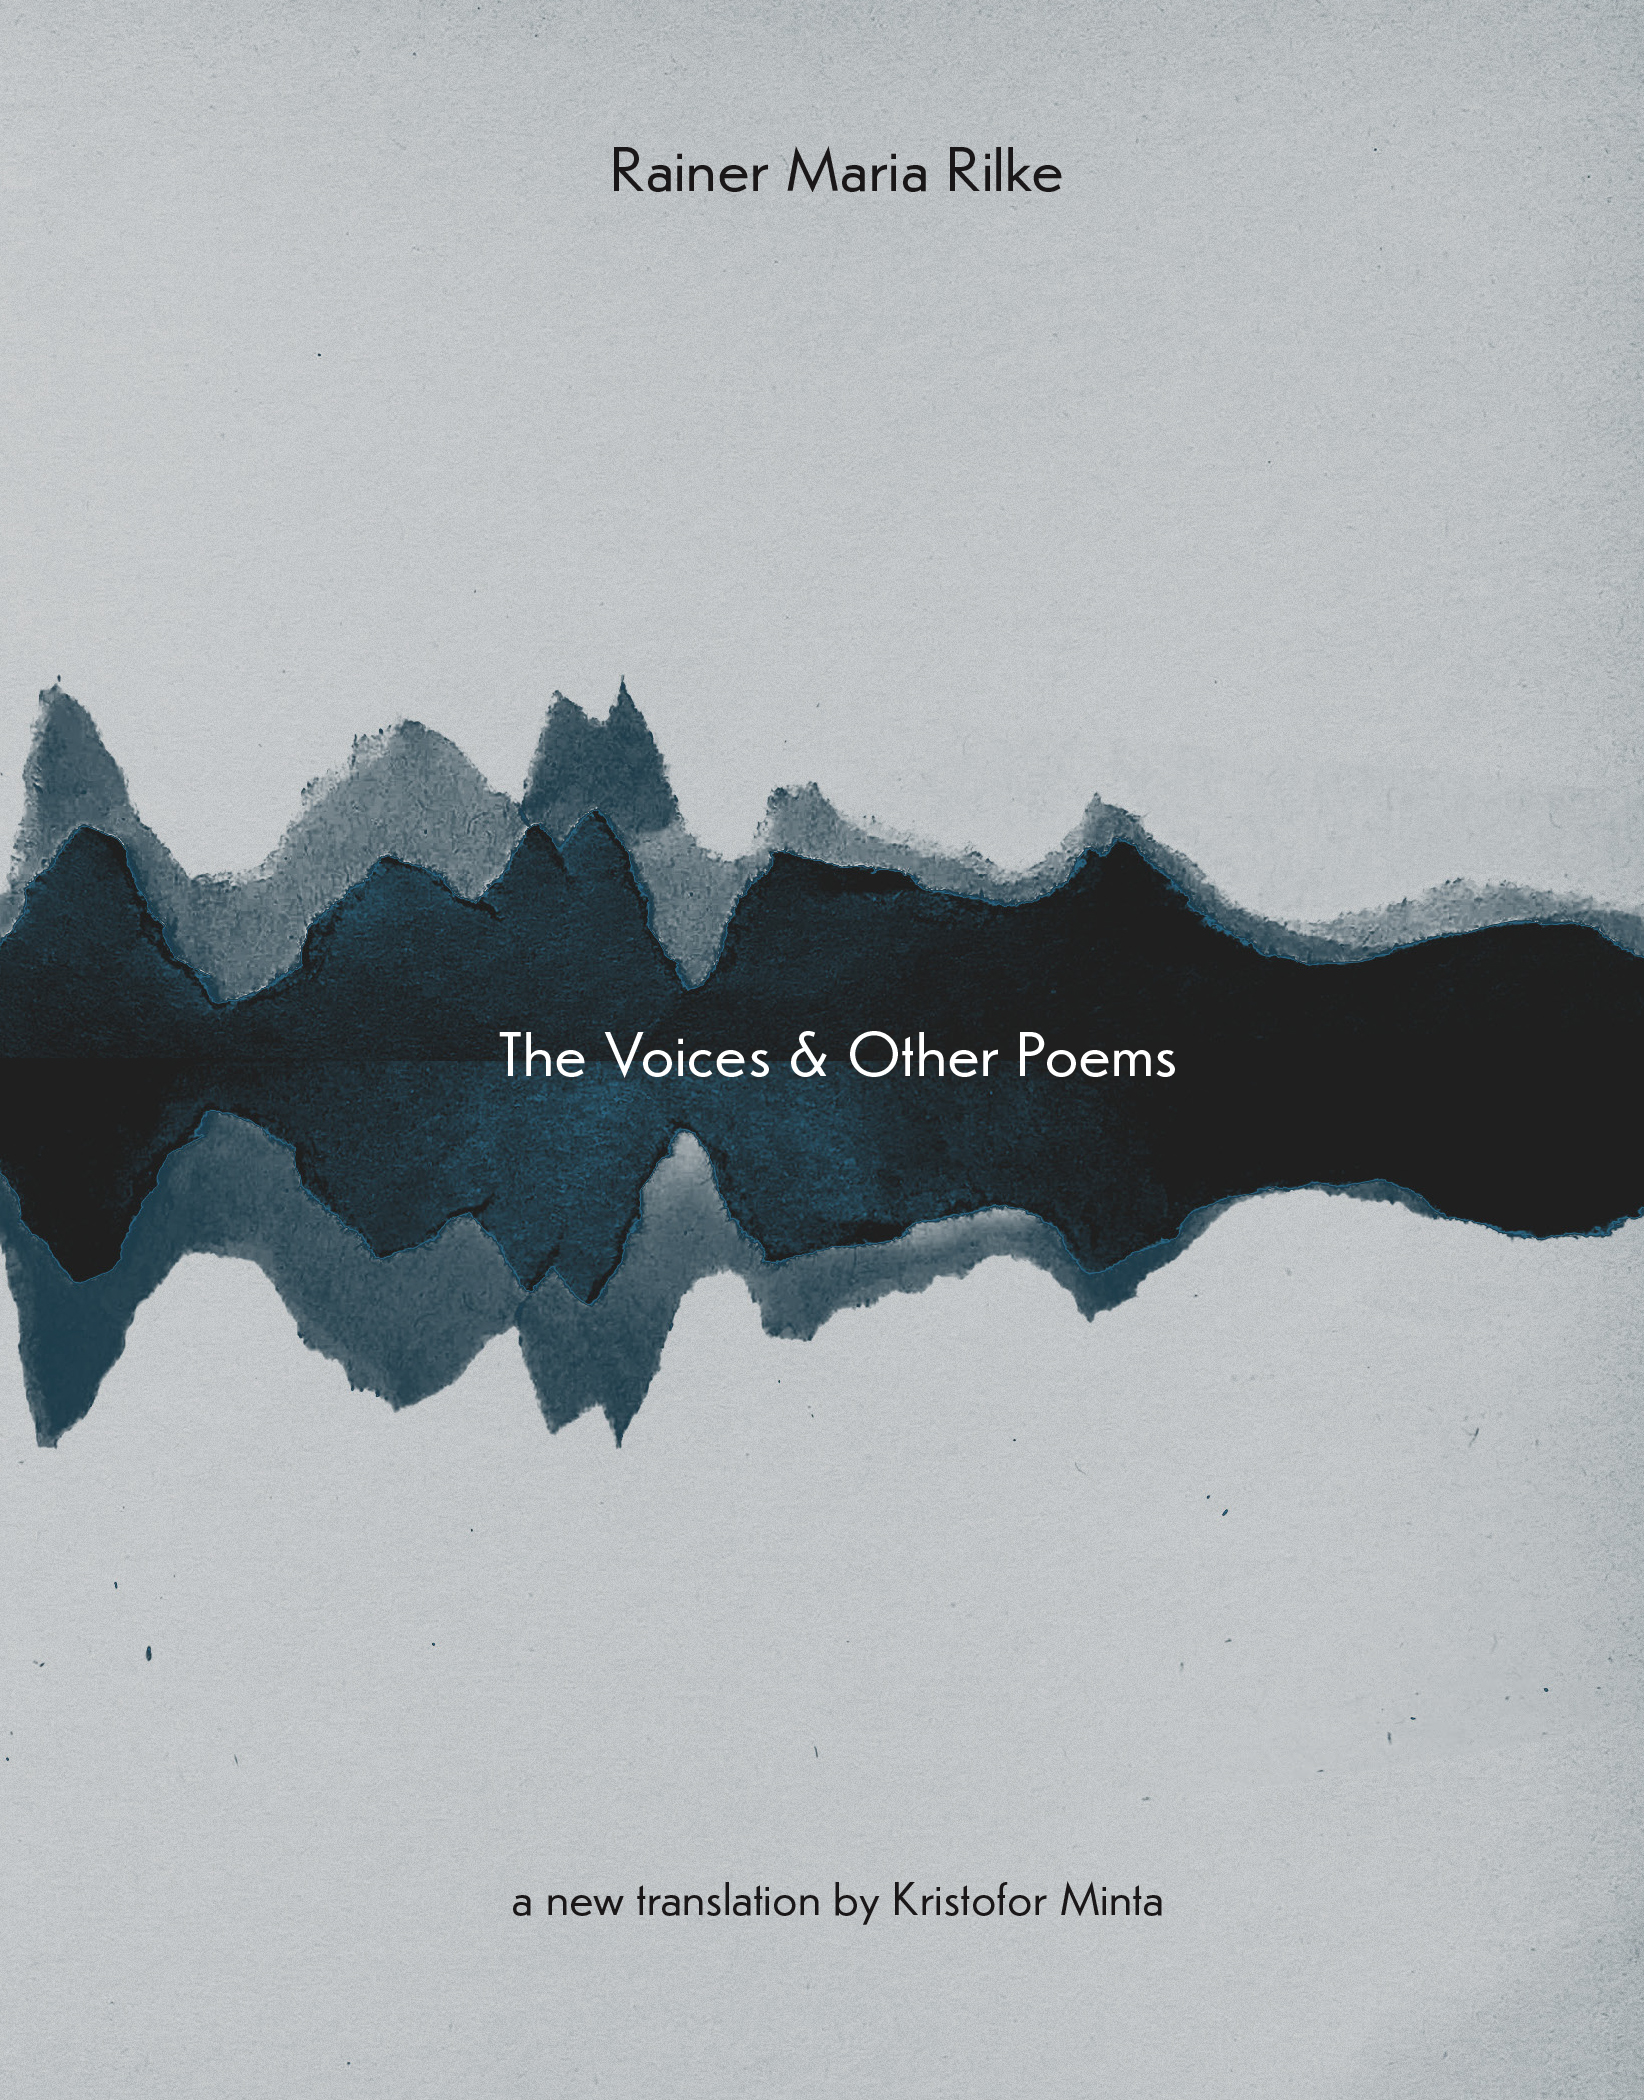 The Voices & Other Poems